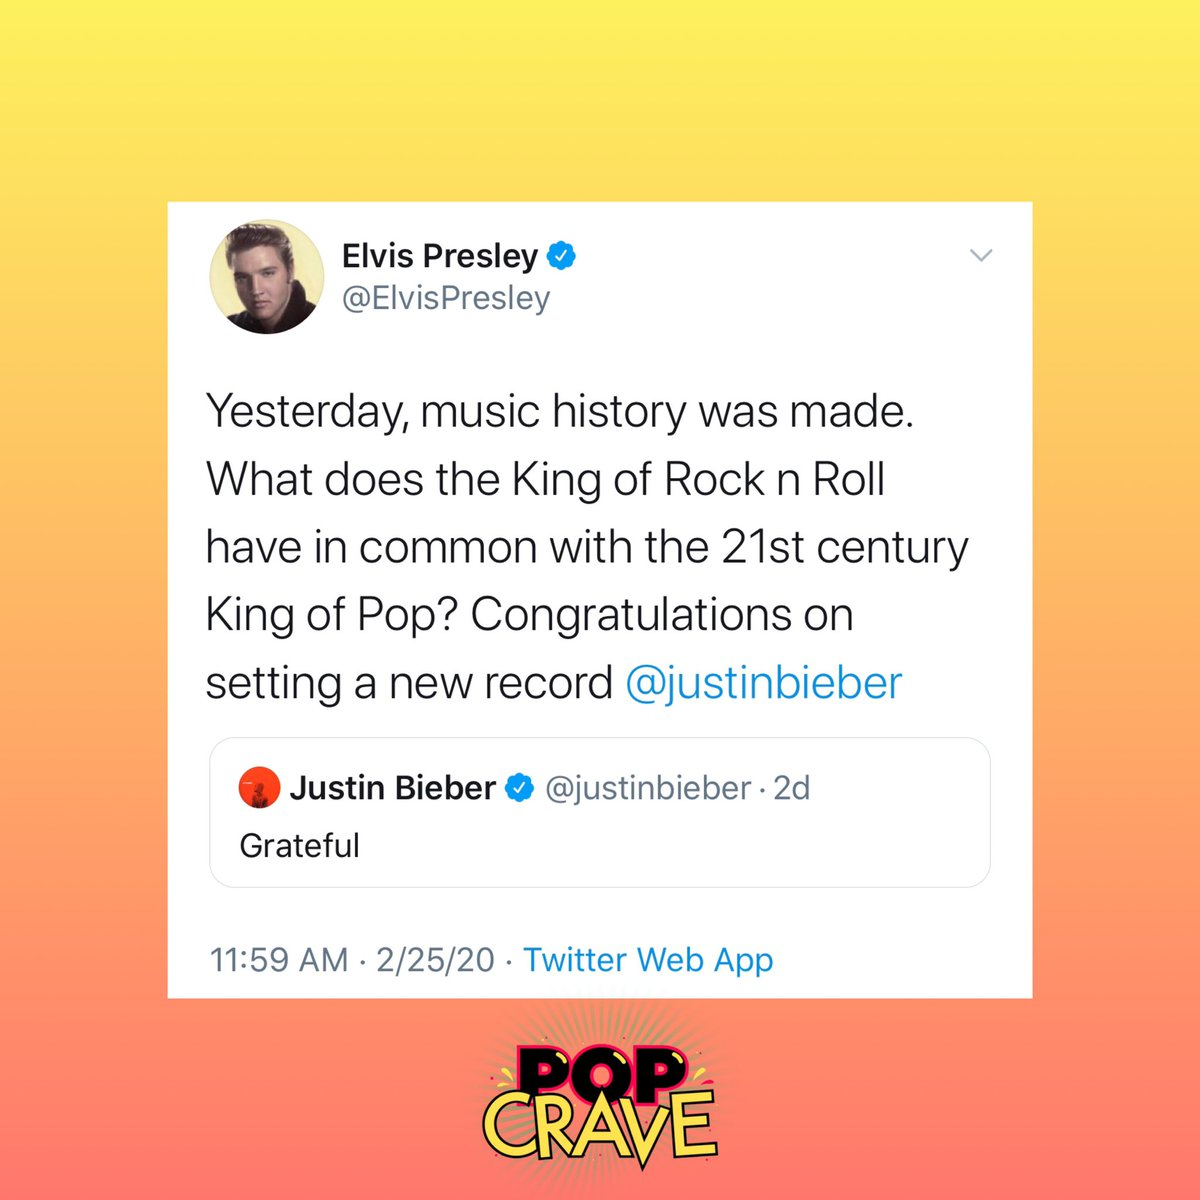 .@ElvisPresley's Twitter account congratulates @JustinBieber on breaking his record for most #1 albums before age 25.